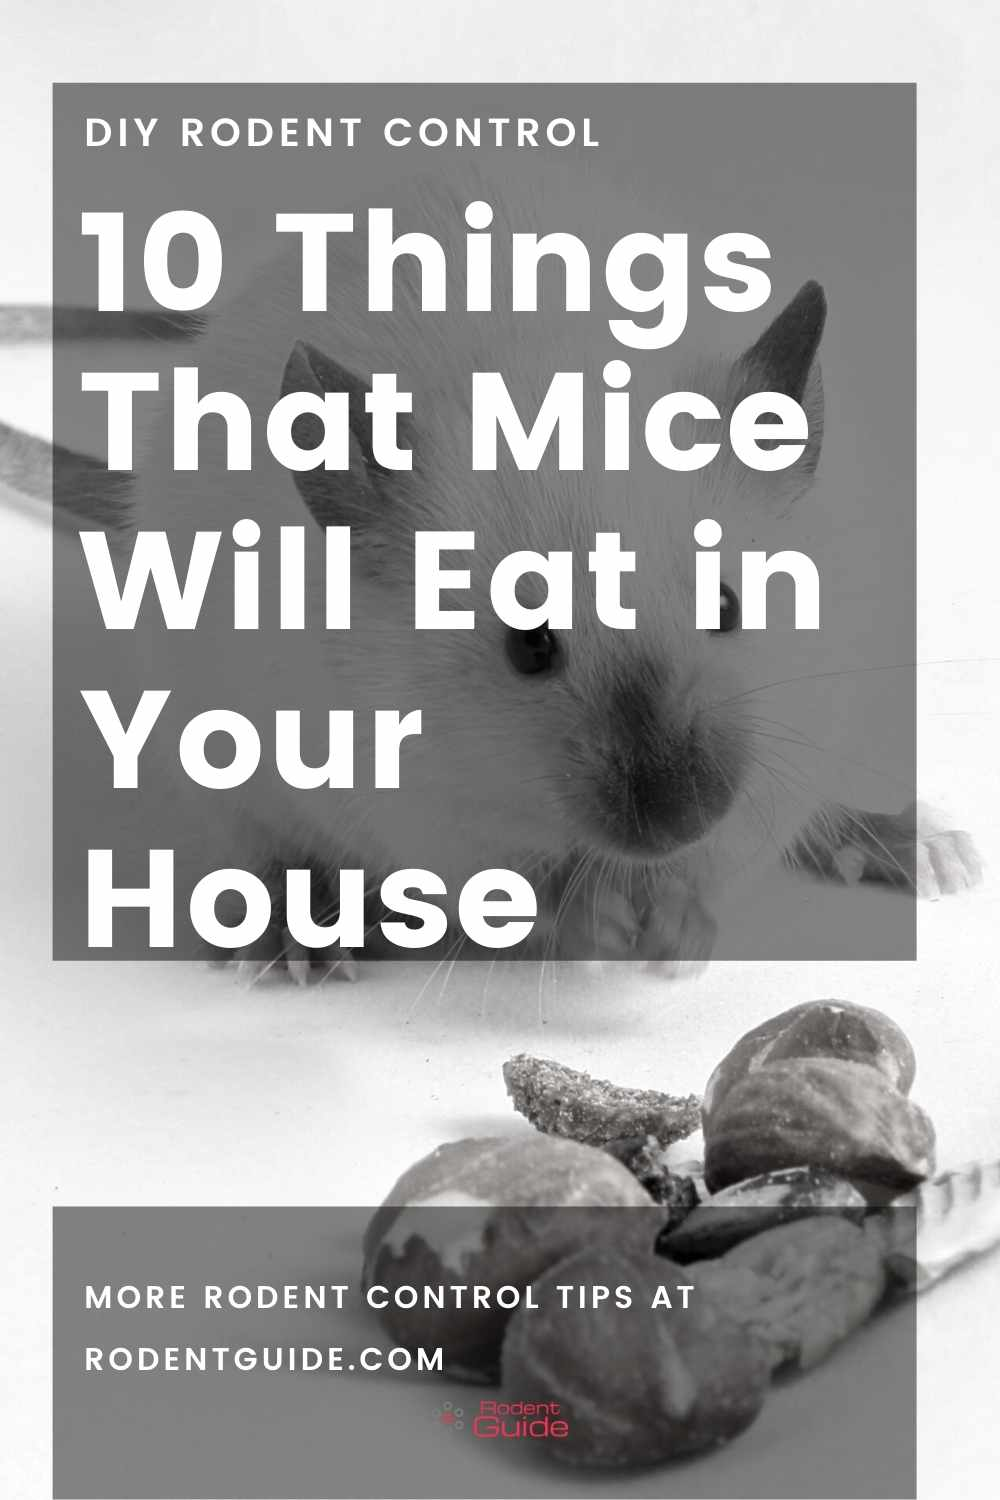 10 Things That Mice Will Eat in Your House